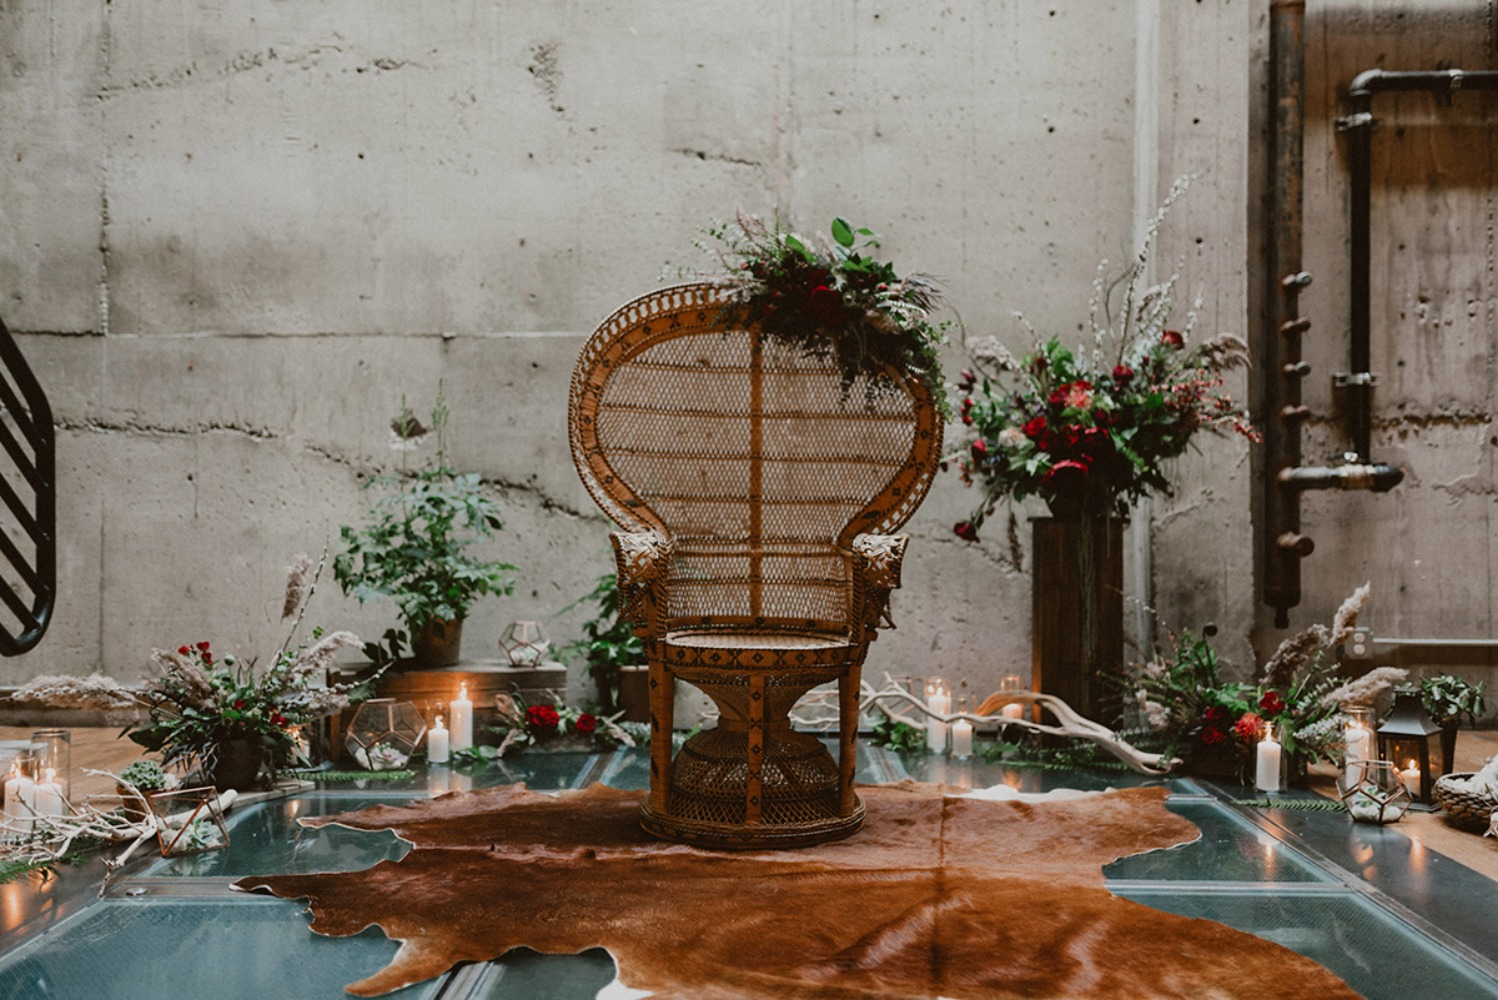 boho chic wedding decor with an industrial twist